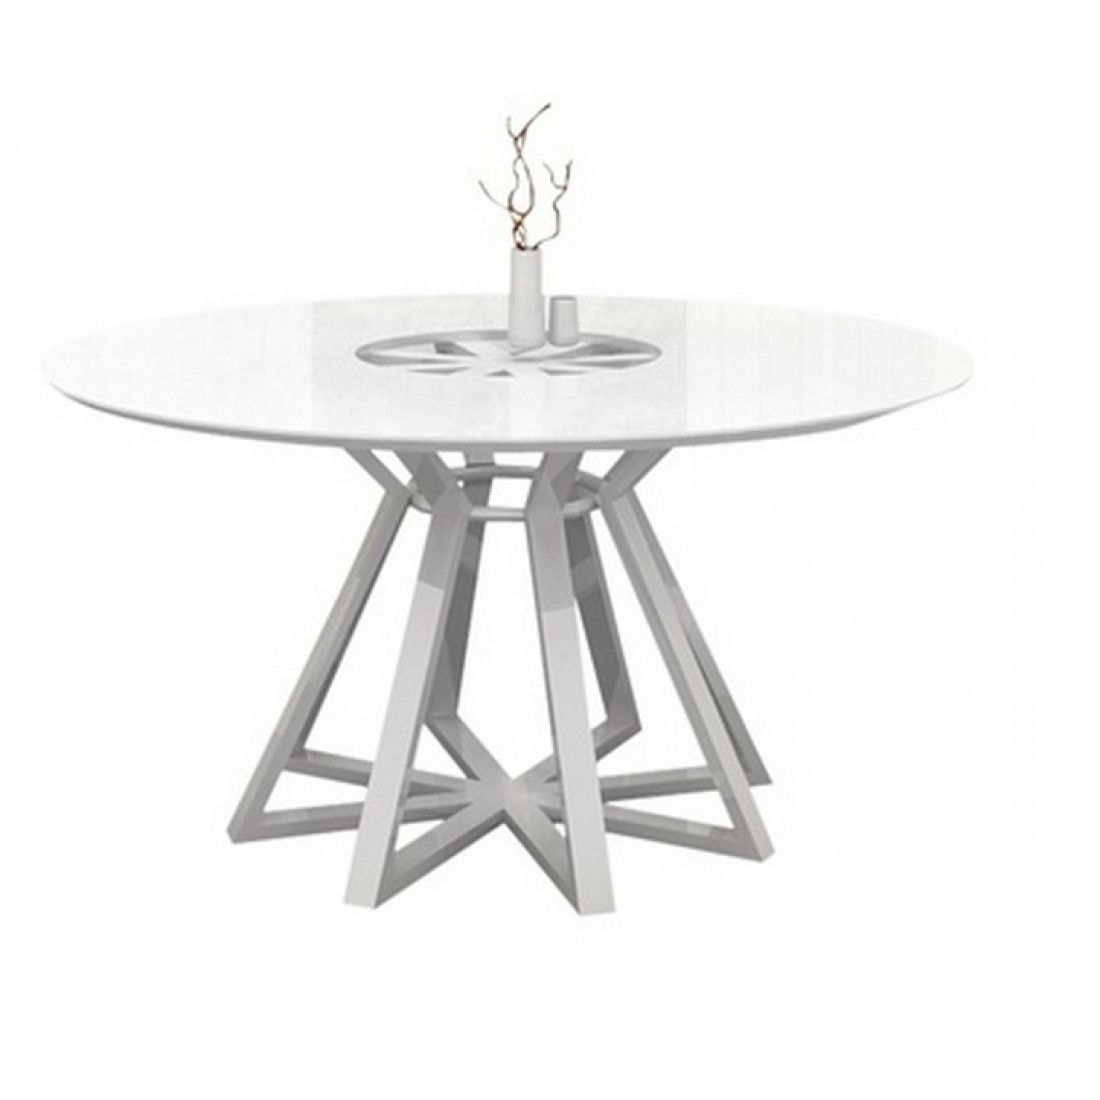 Star High Gloss White Lacquer Dining Table Round Marble